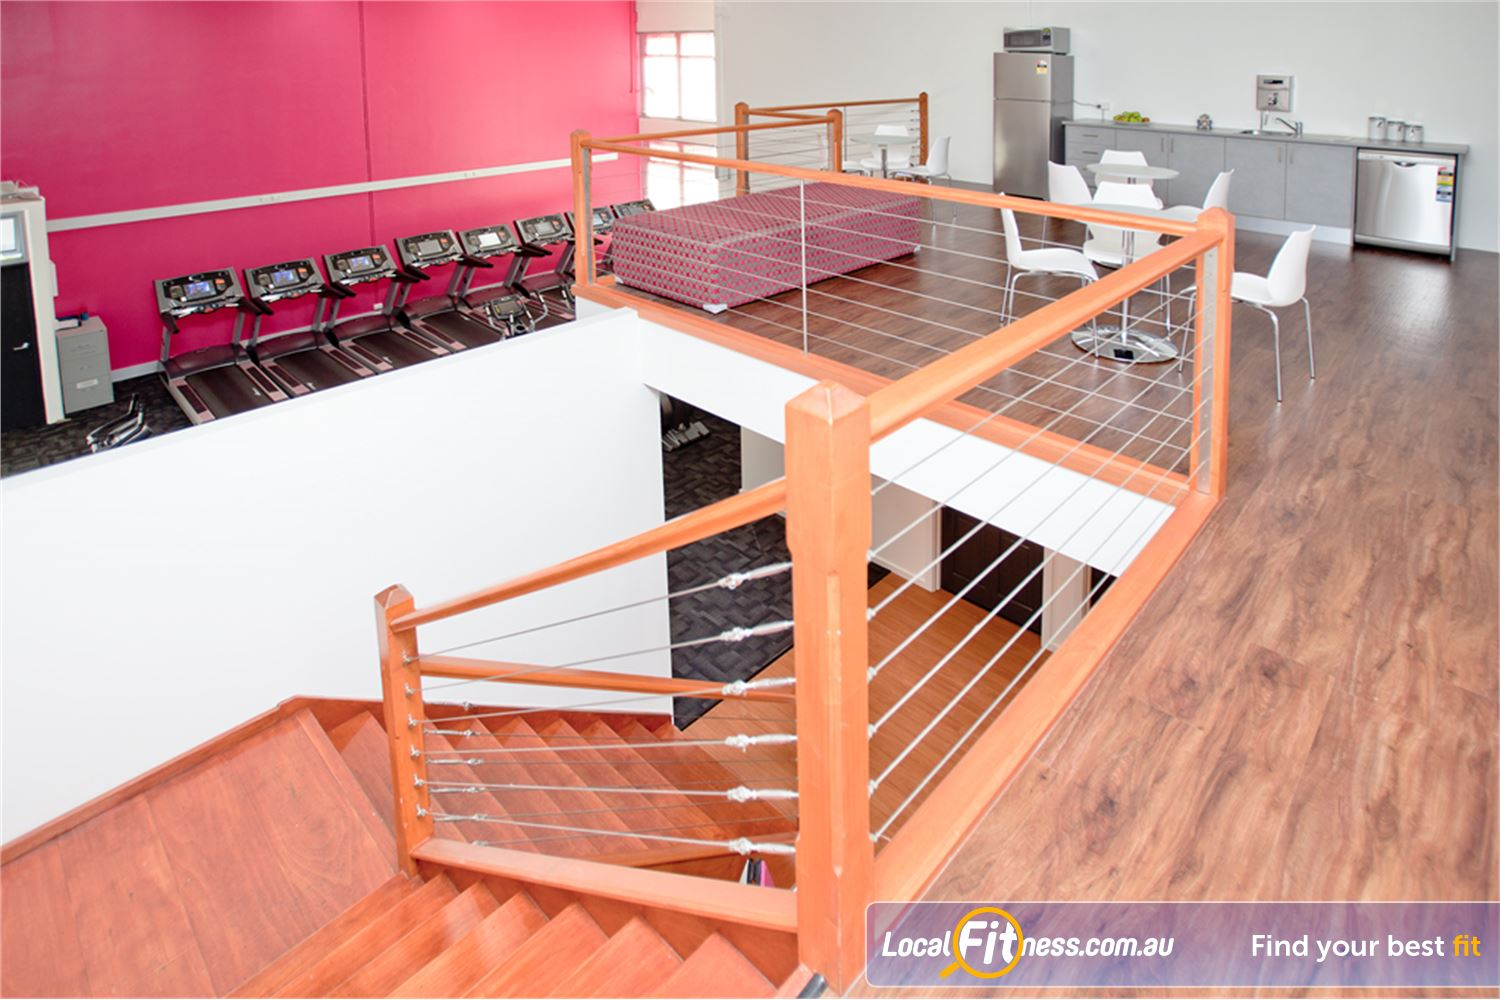 Fernwood Fitness Near Spotswood The spacious Yarraville womens24 hour gym.